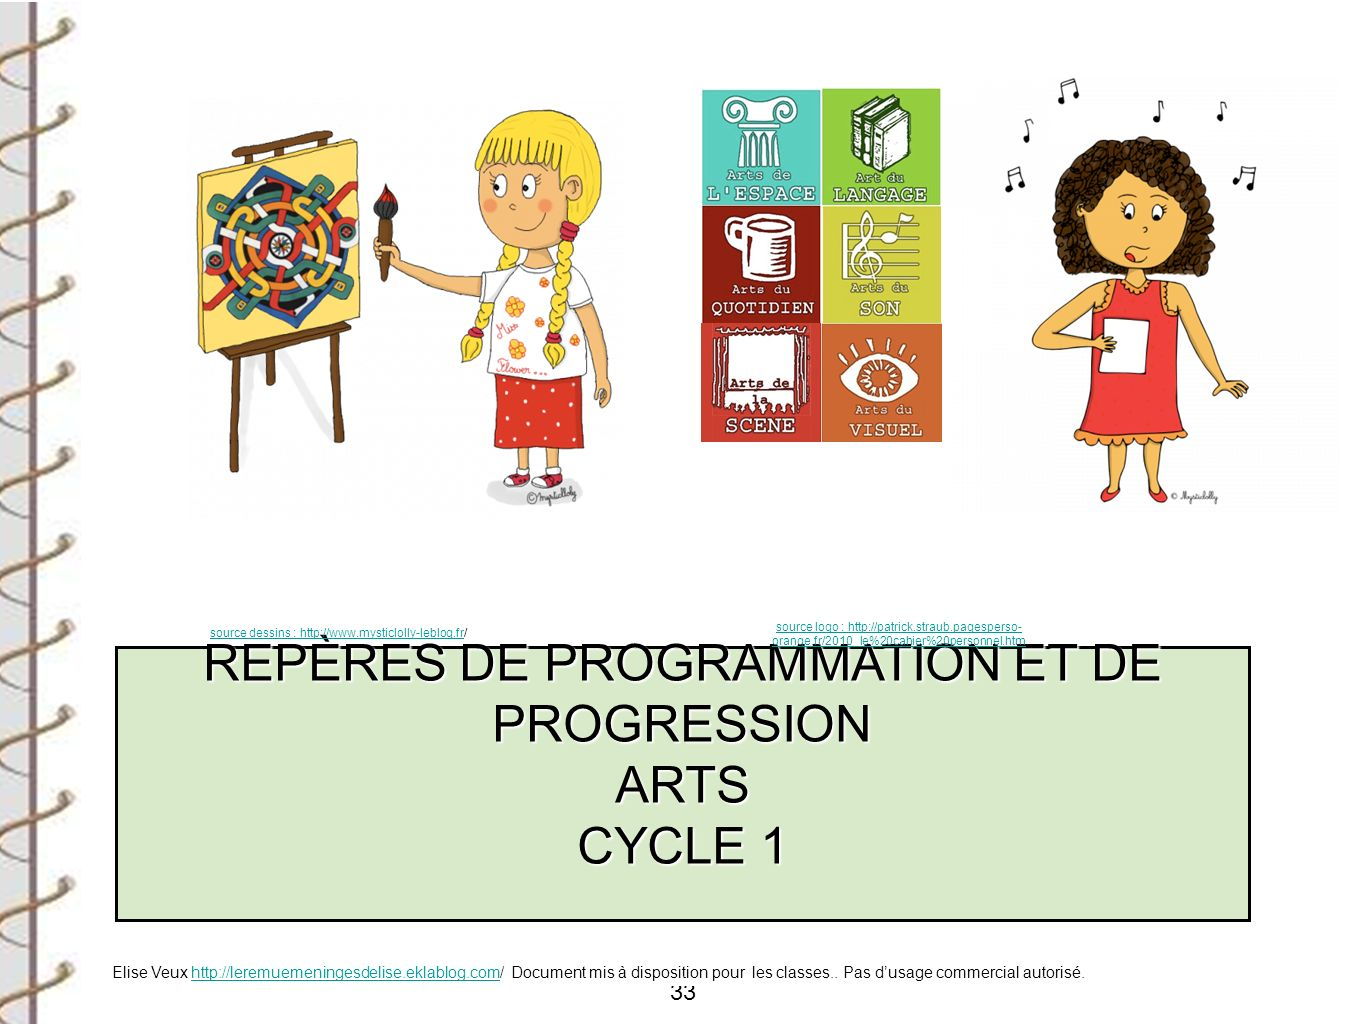 REPÈRES DE PROGRAMMATION ET DE PROGRESSION ARTS CYCLE 1